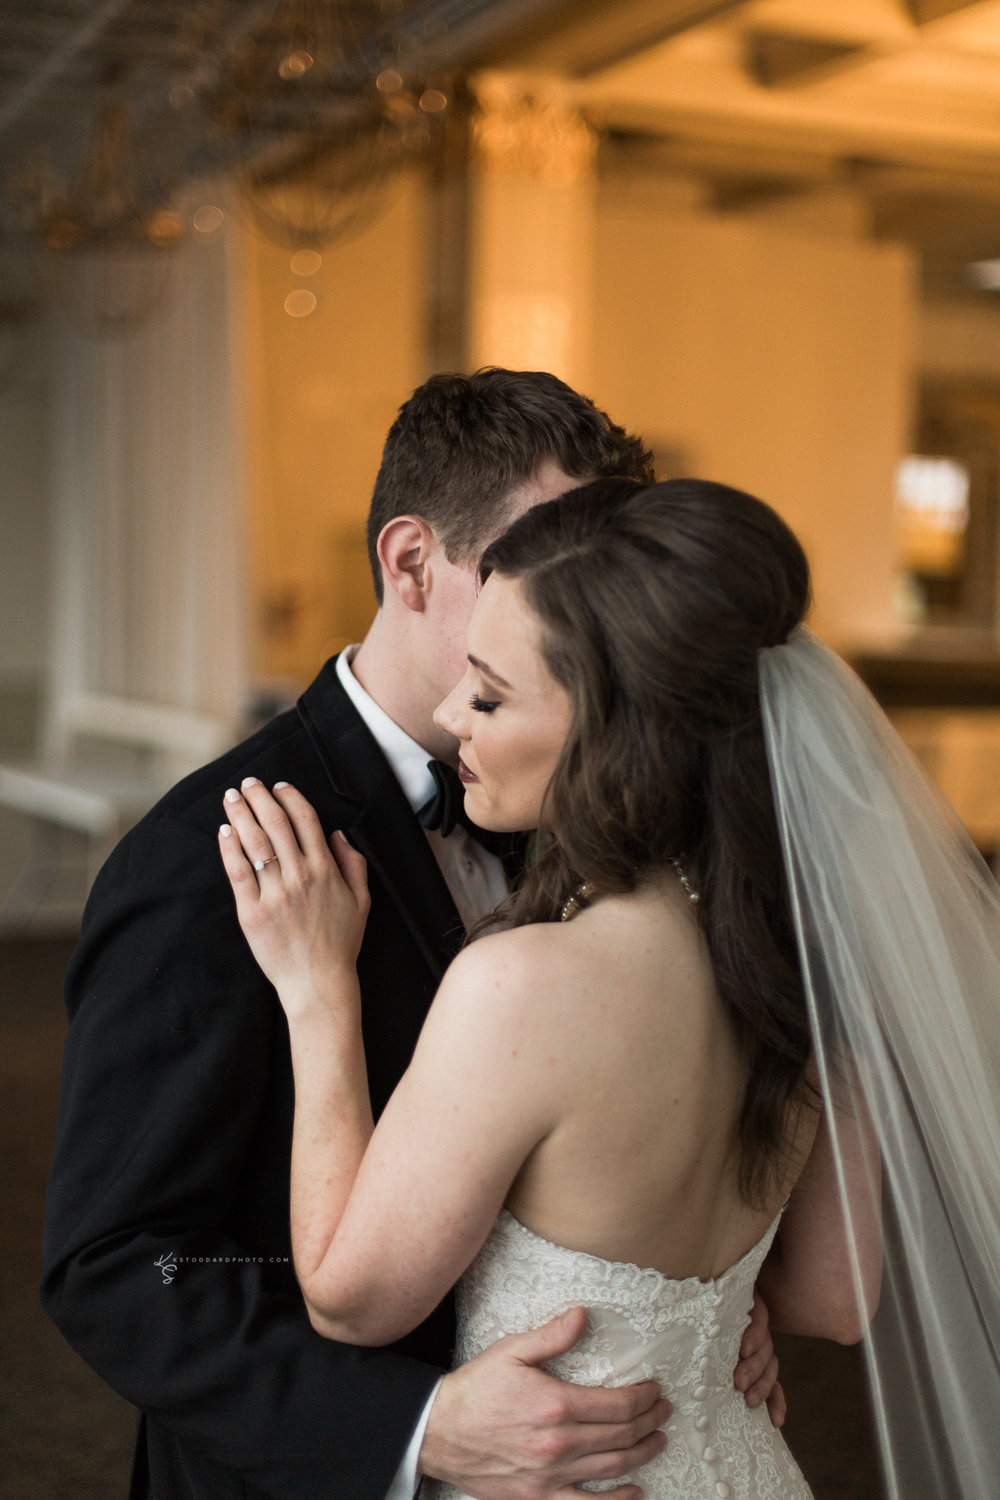 Brittany and Eric - Wed - K. Stoddard Photography & Fine Art - Memphis, TN (7 of 12).jpg